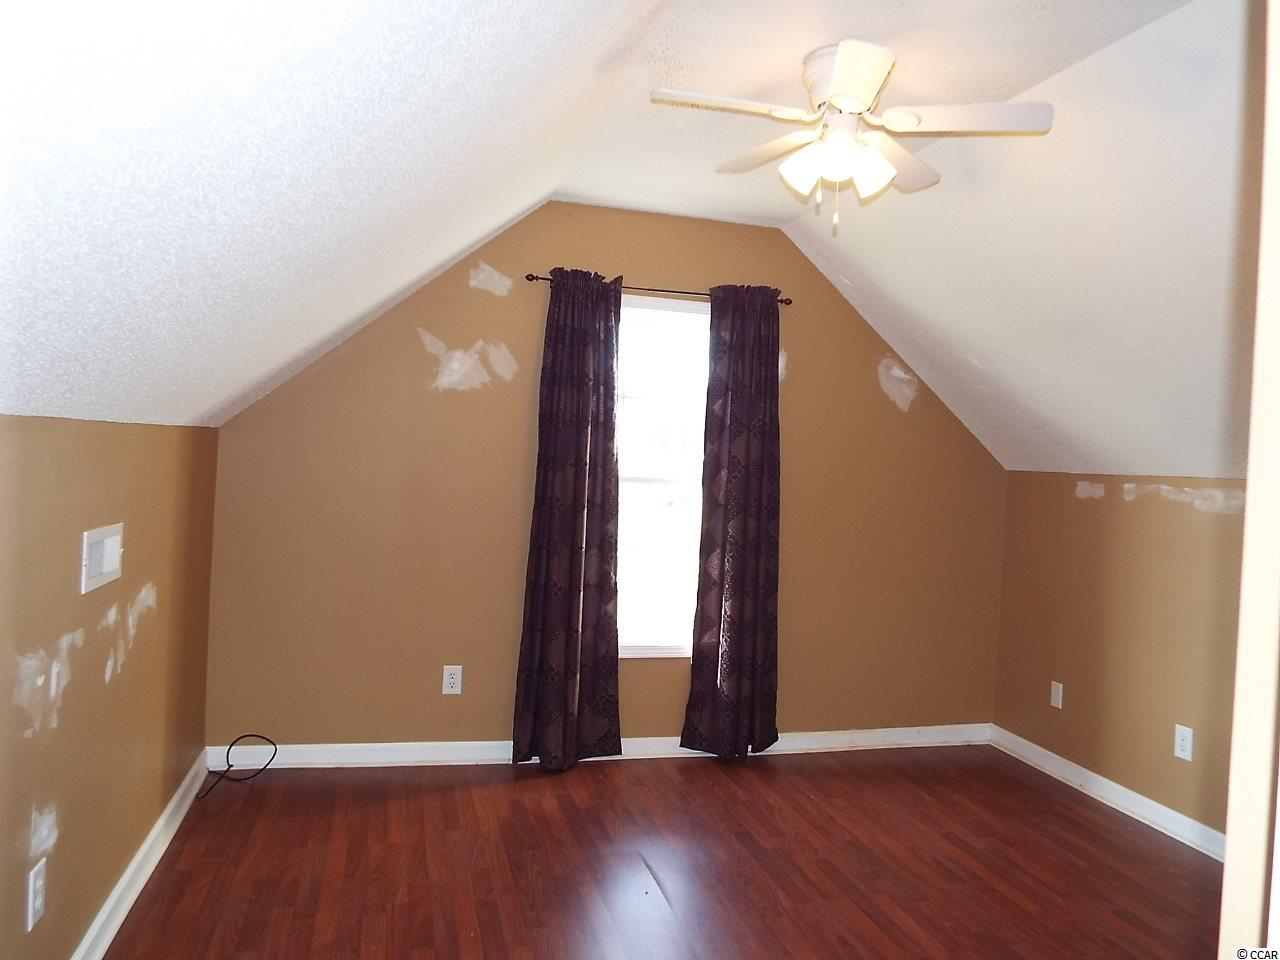 Foreclosure-Deed Not Recorded house at  Wood Creek for $149,900